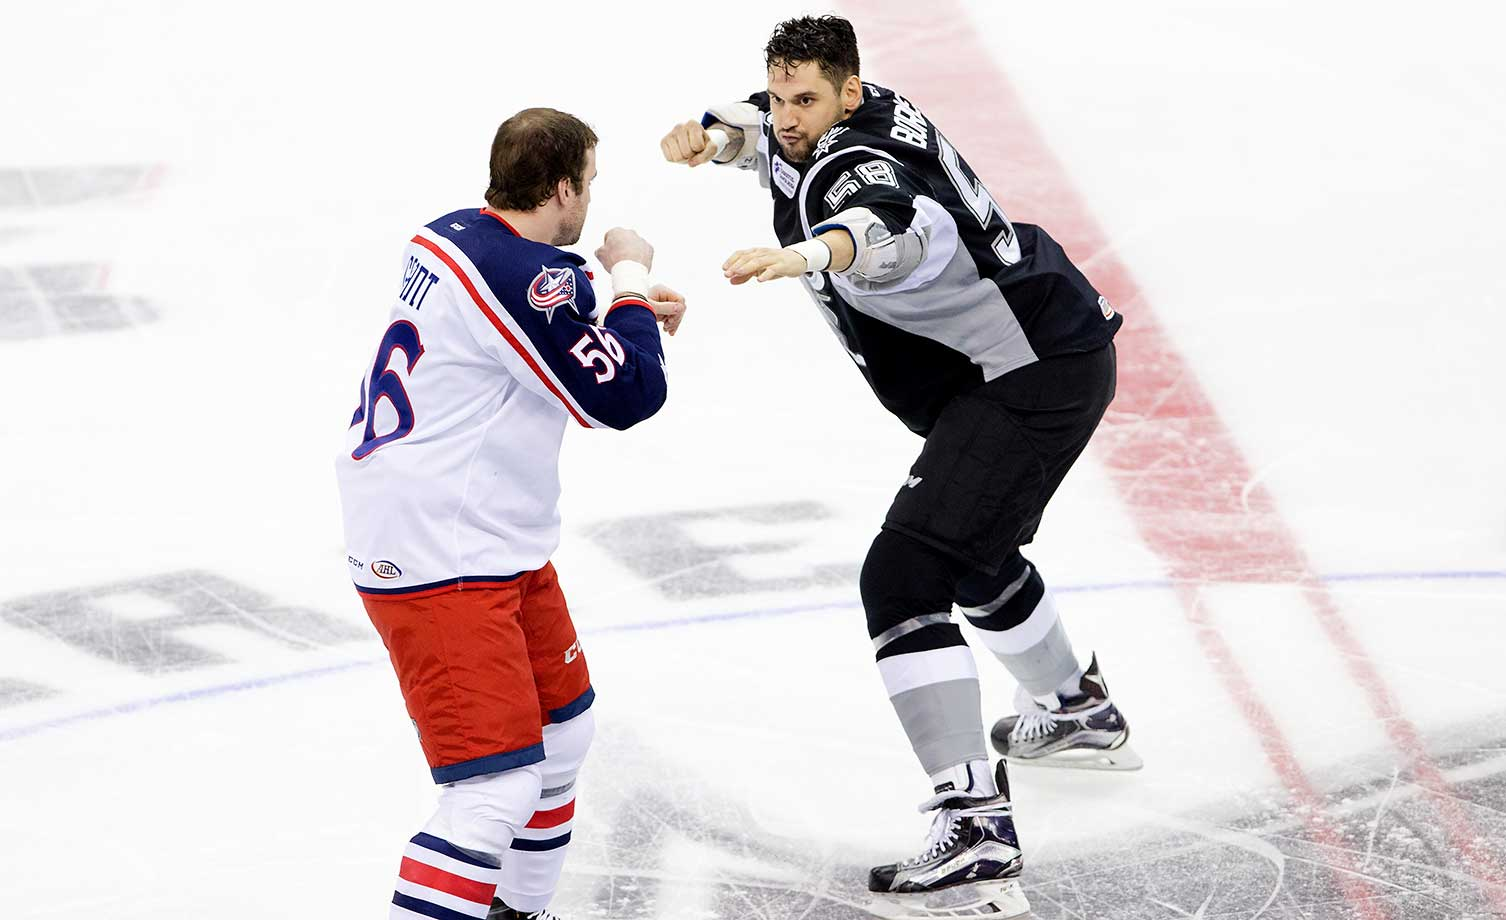 Patrick Bordeleau (58) of the San Antonio Rampage and Brett Gallant of the Lake Erie Monsters get ready to trade blows.